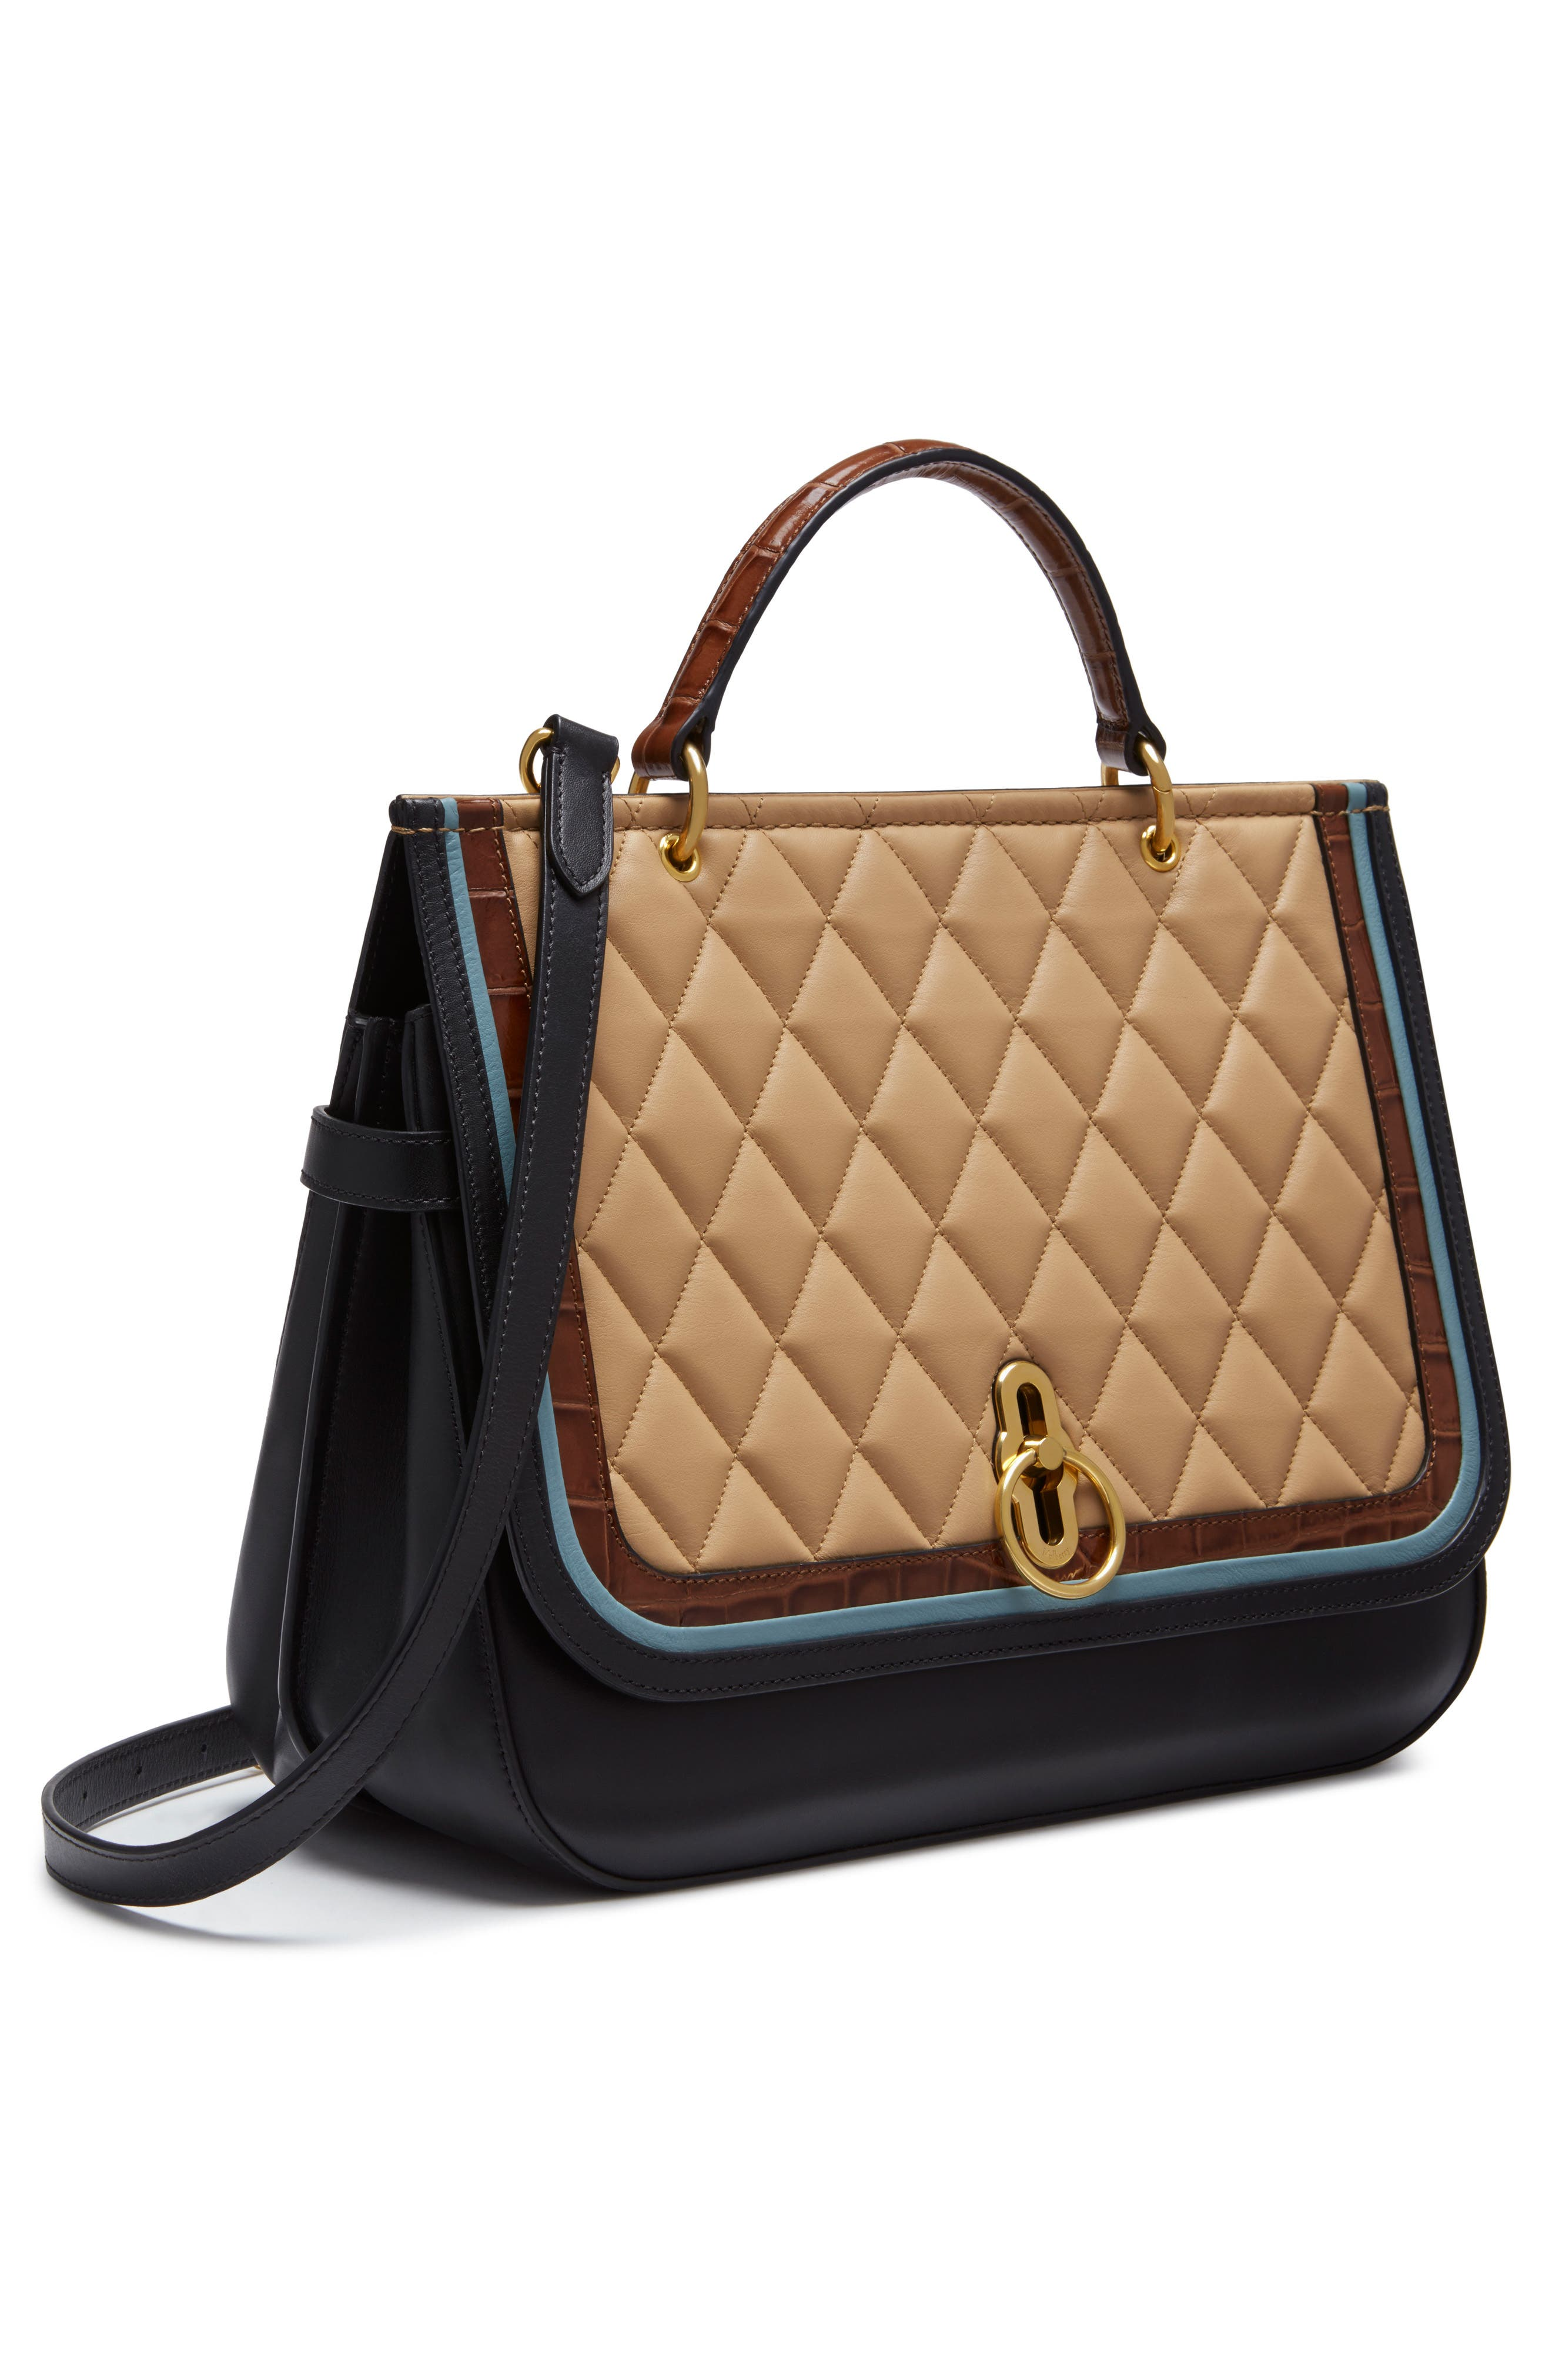 Amberley Quilted Calfskin Leather Satchel,                             Alternate thumbnail 5, color,                             BLACK/ TAN/ MULTI